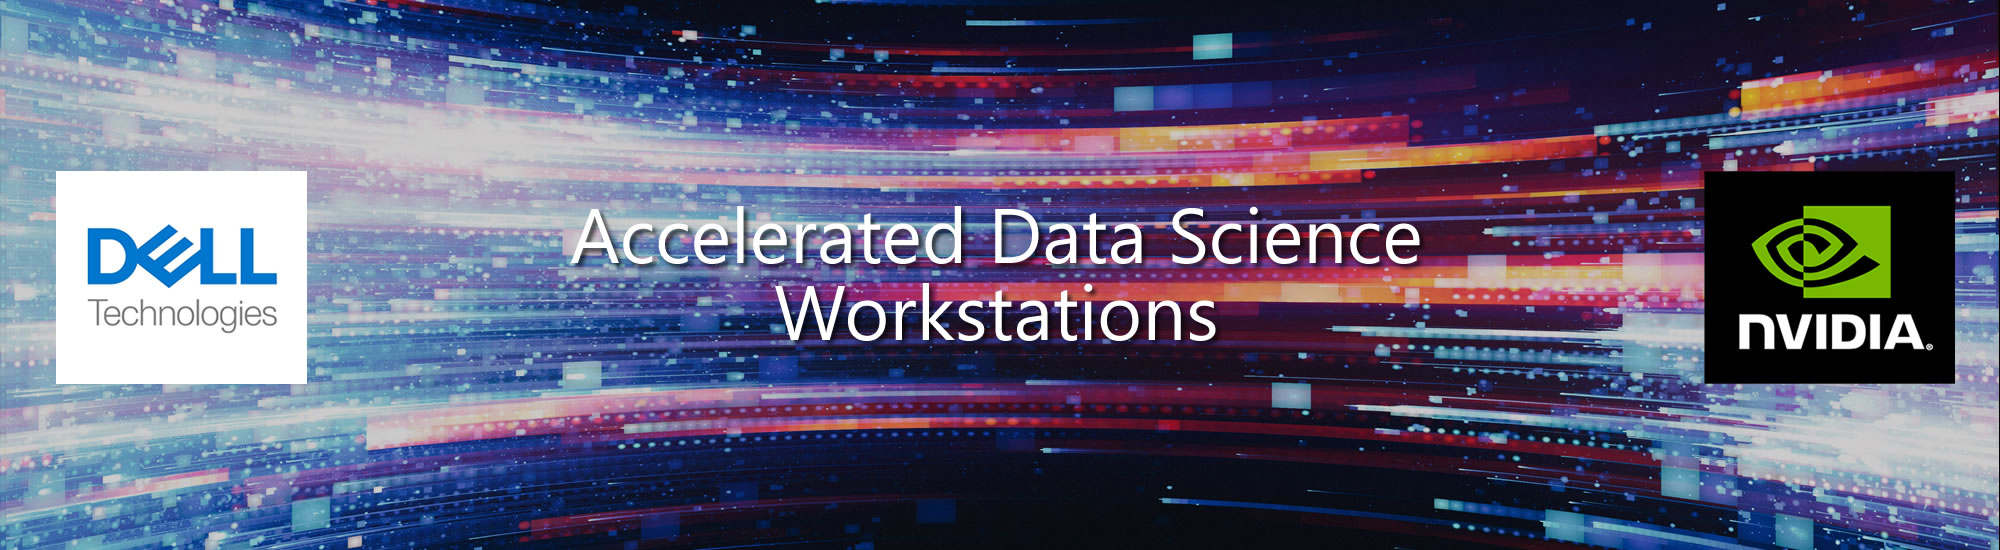 Accelerated Data Science with Dell, NVIDIA, and Future Tech